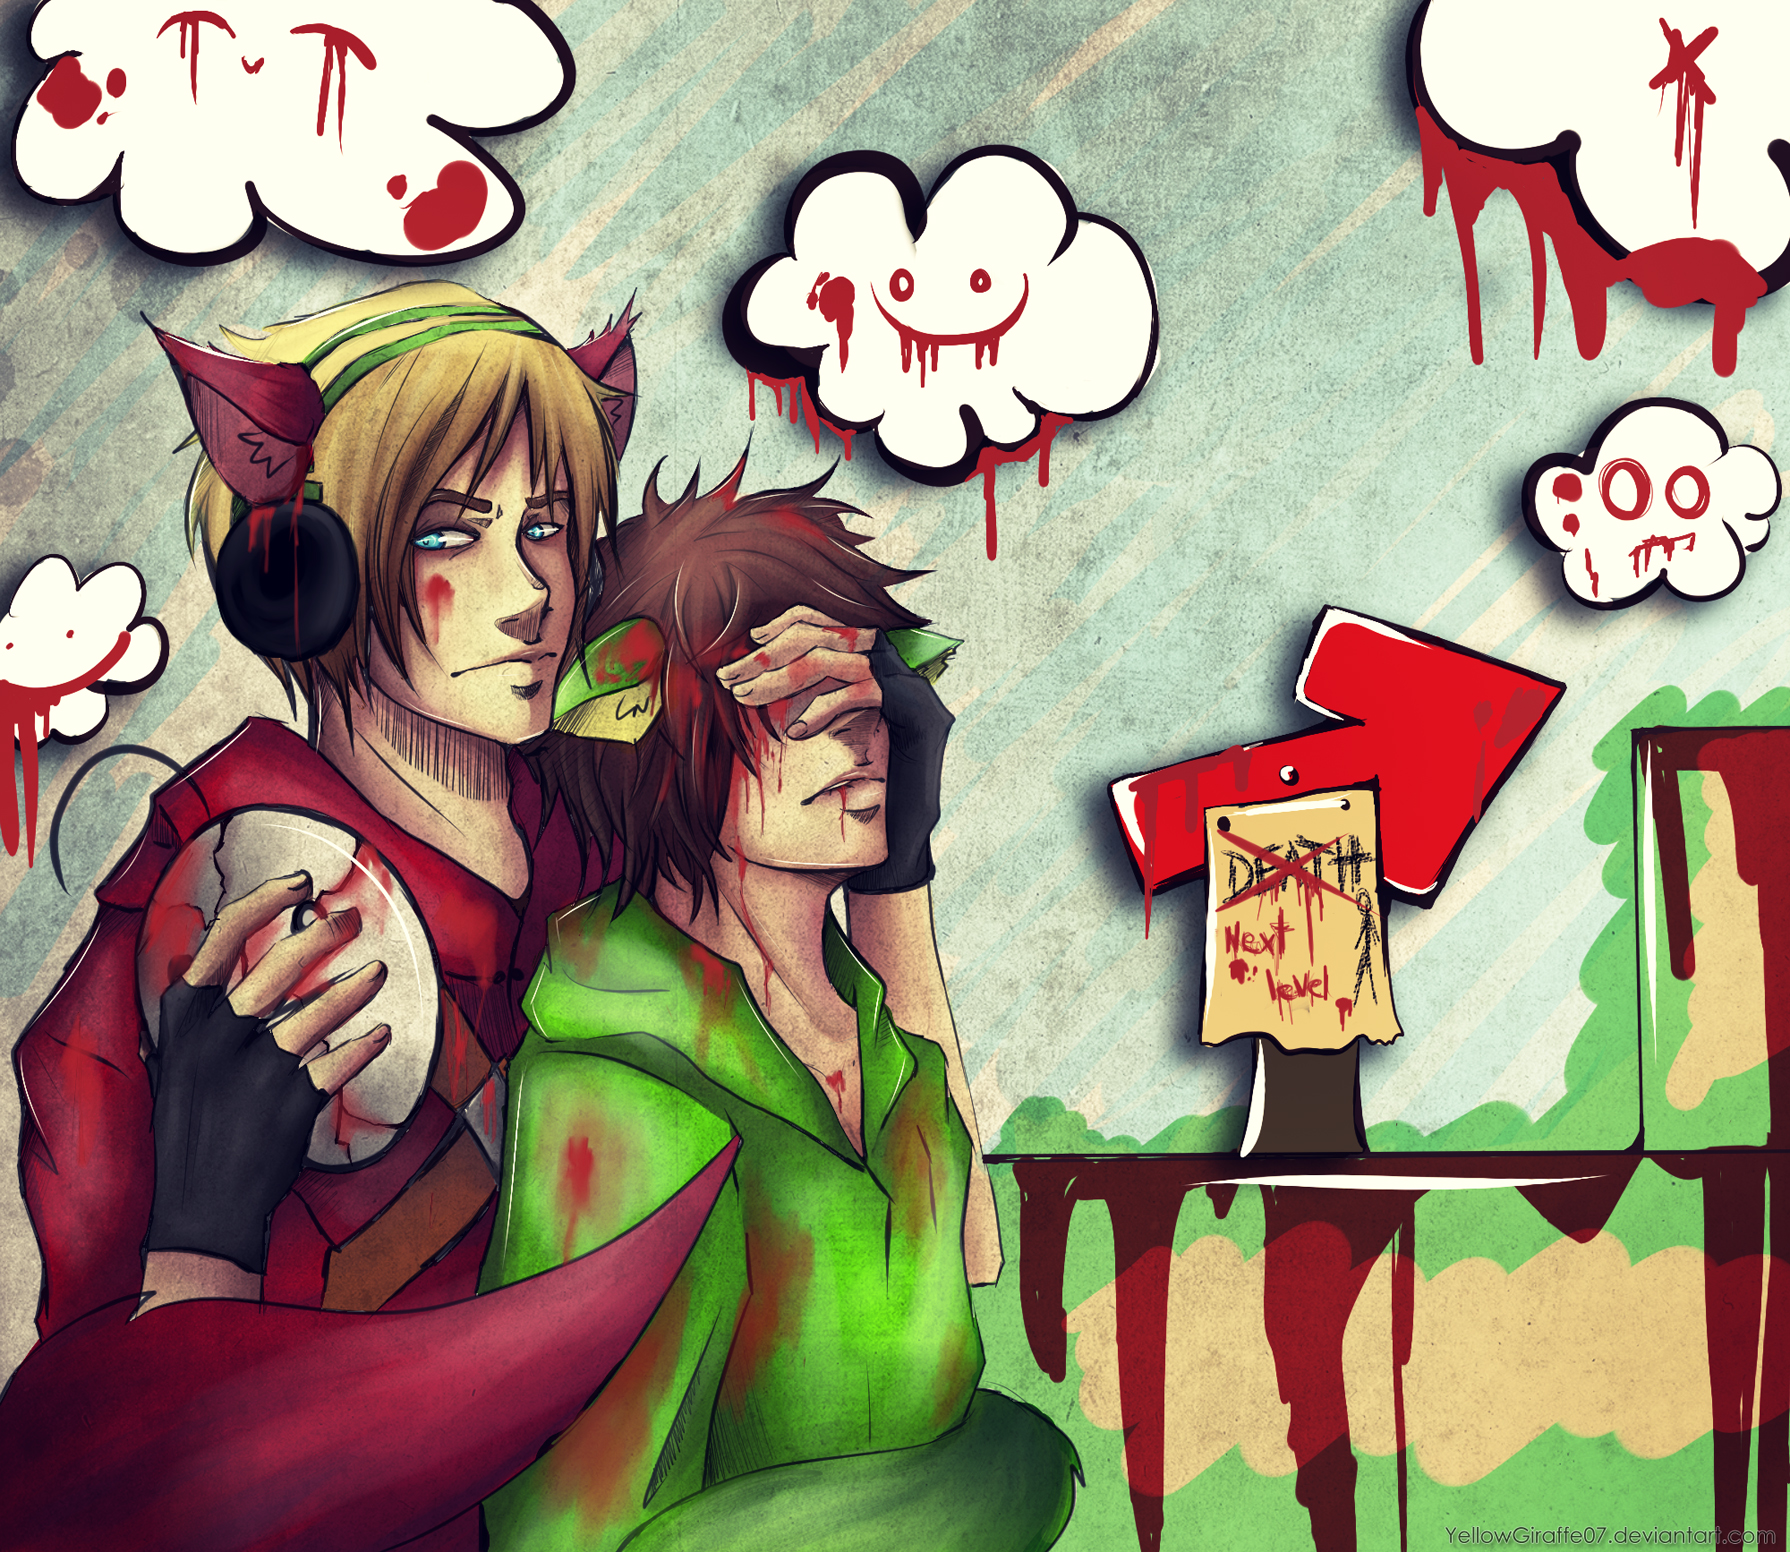 PewdieCry: more BLOOD pain and tears by Micatsa